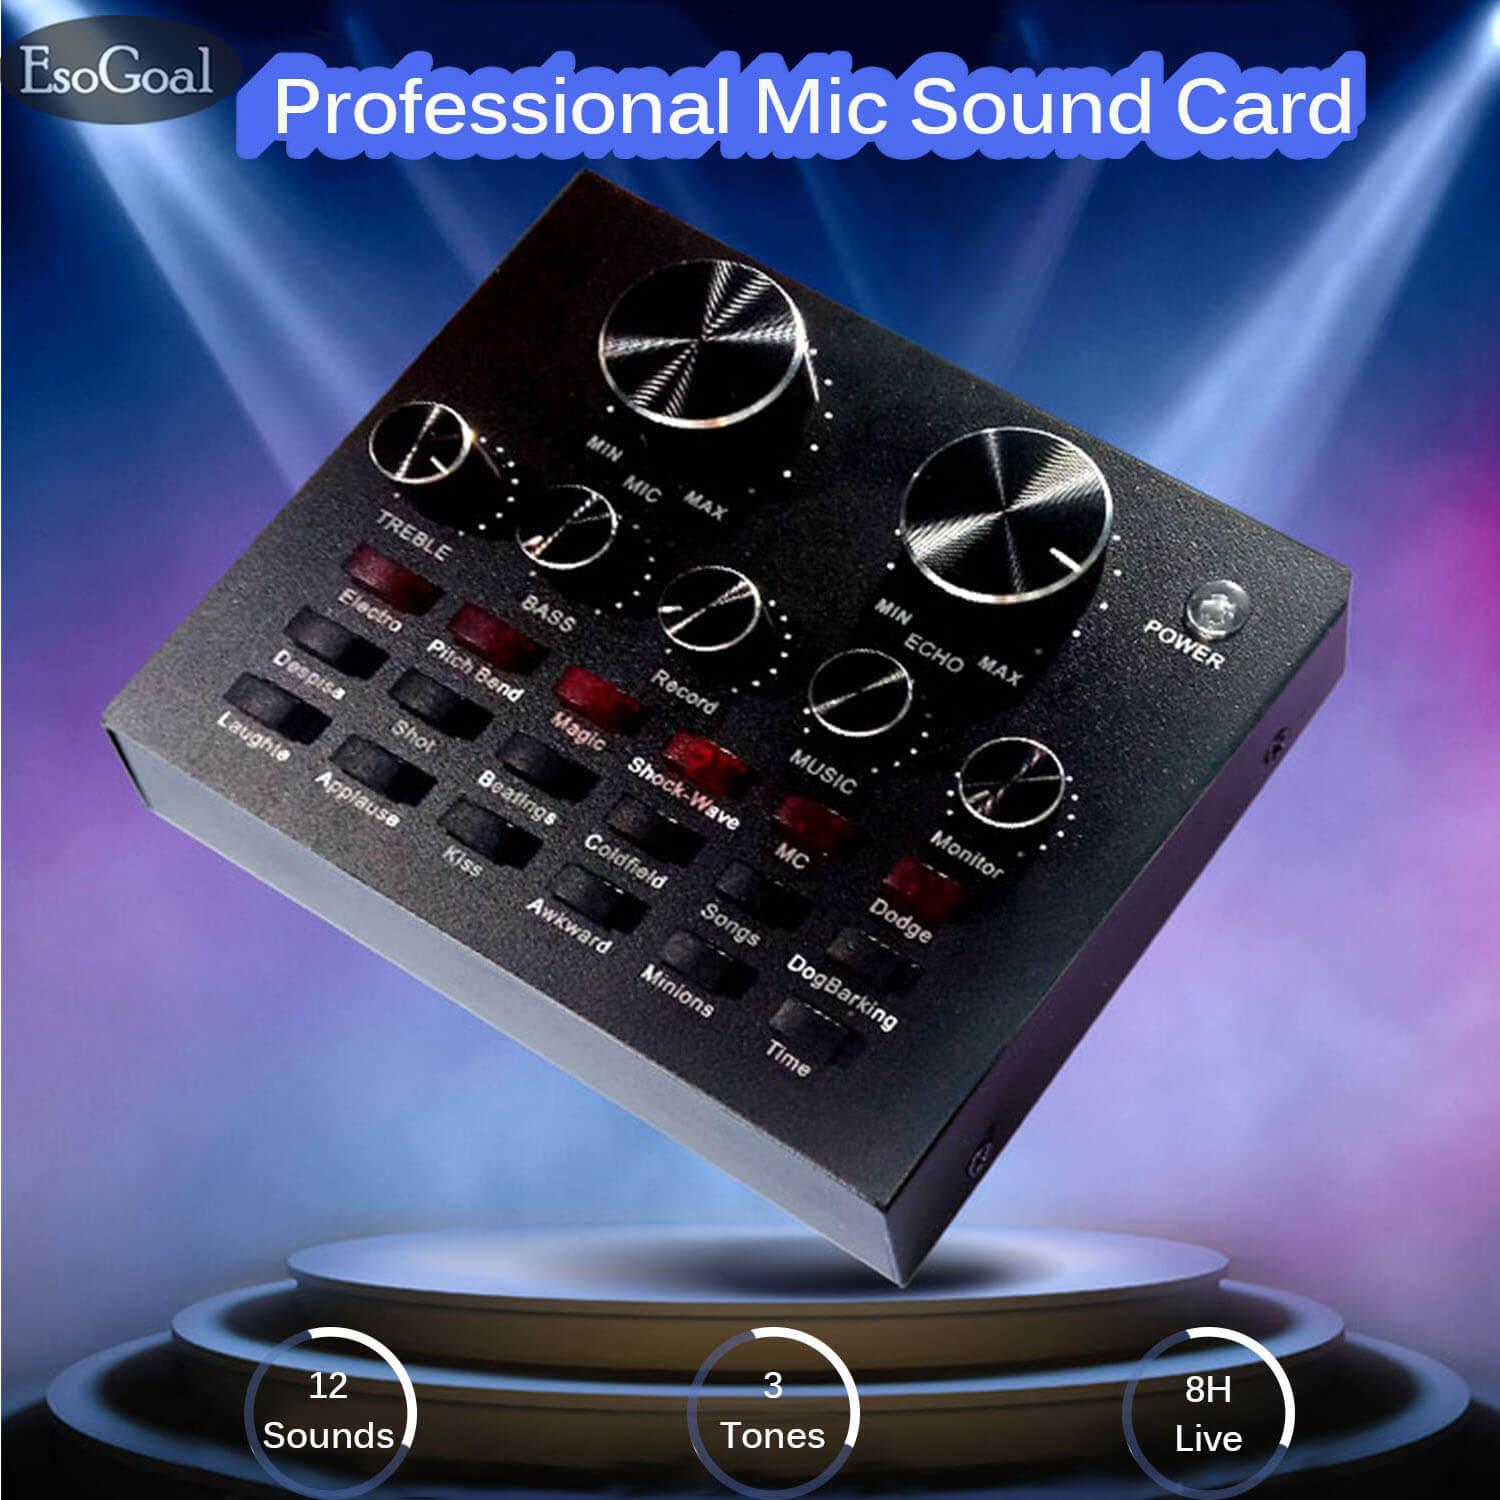 EsoGoal Audio Mixer Audio Interfaces Karaoke Sound Card Digital Effects Net Red Live Streaming Audio Interface with 12 Electric Sounds 12 Sound Effects 3 Tones for TV PC smart phone